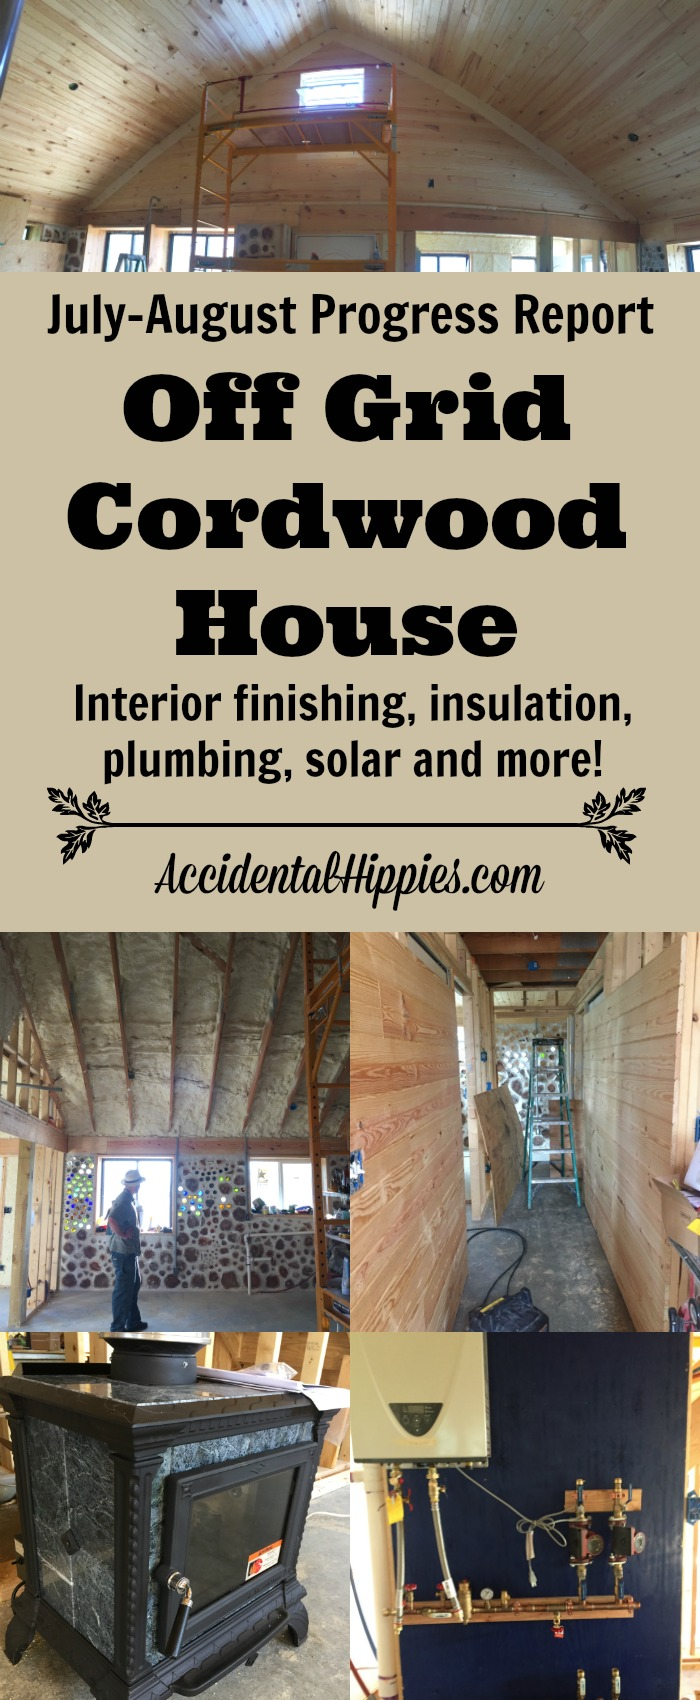 Off grid building, our cordwood house, interior construction, off grid  systems, and